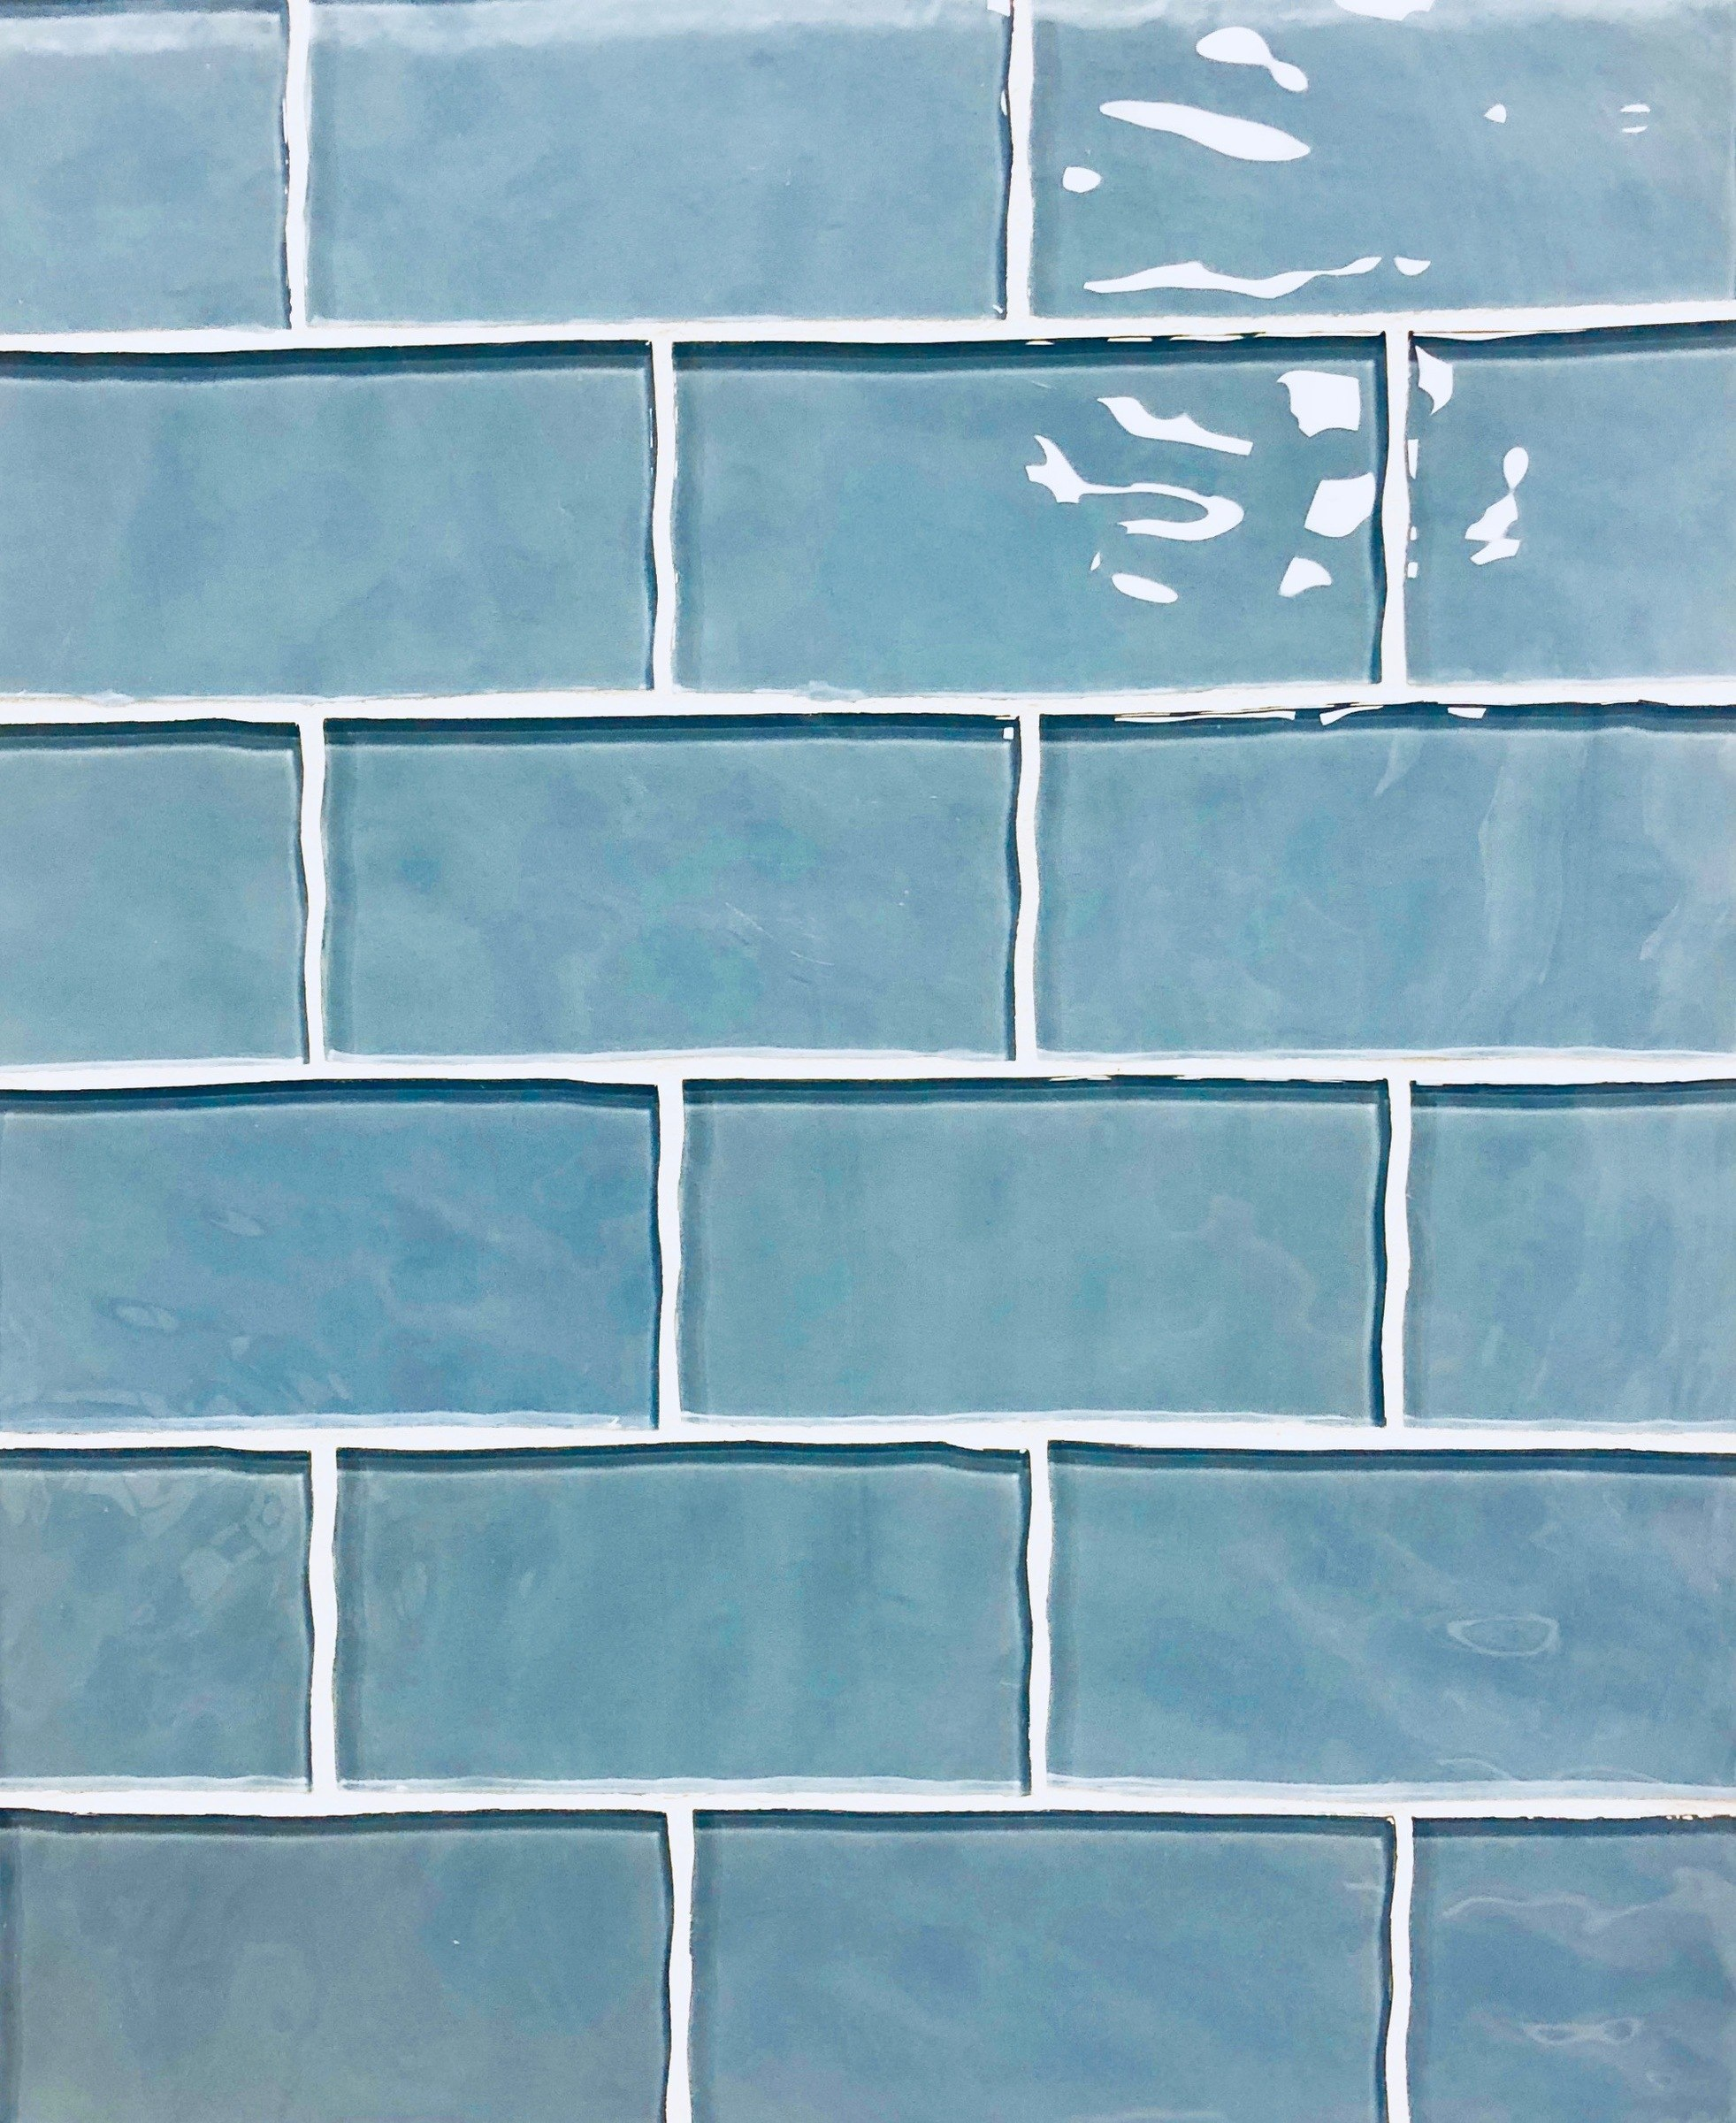 Glass Archives - Tile Outlet Chicago